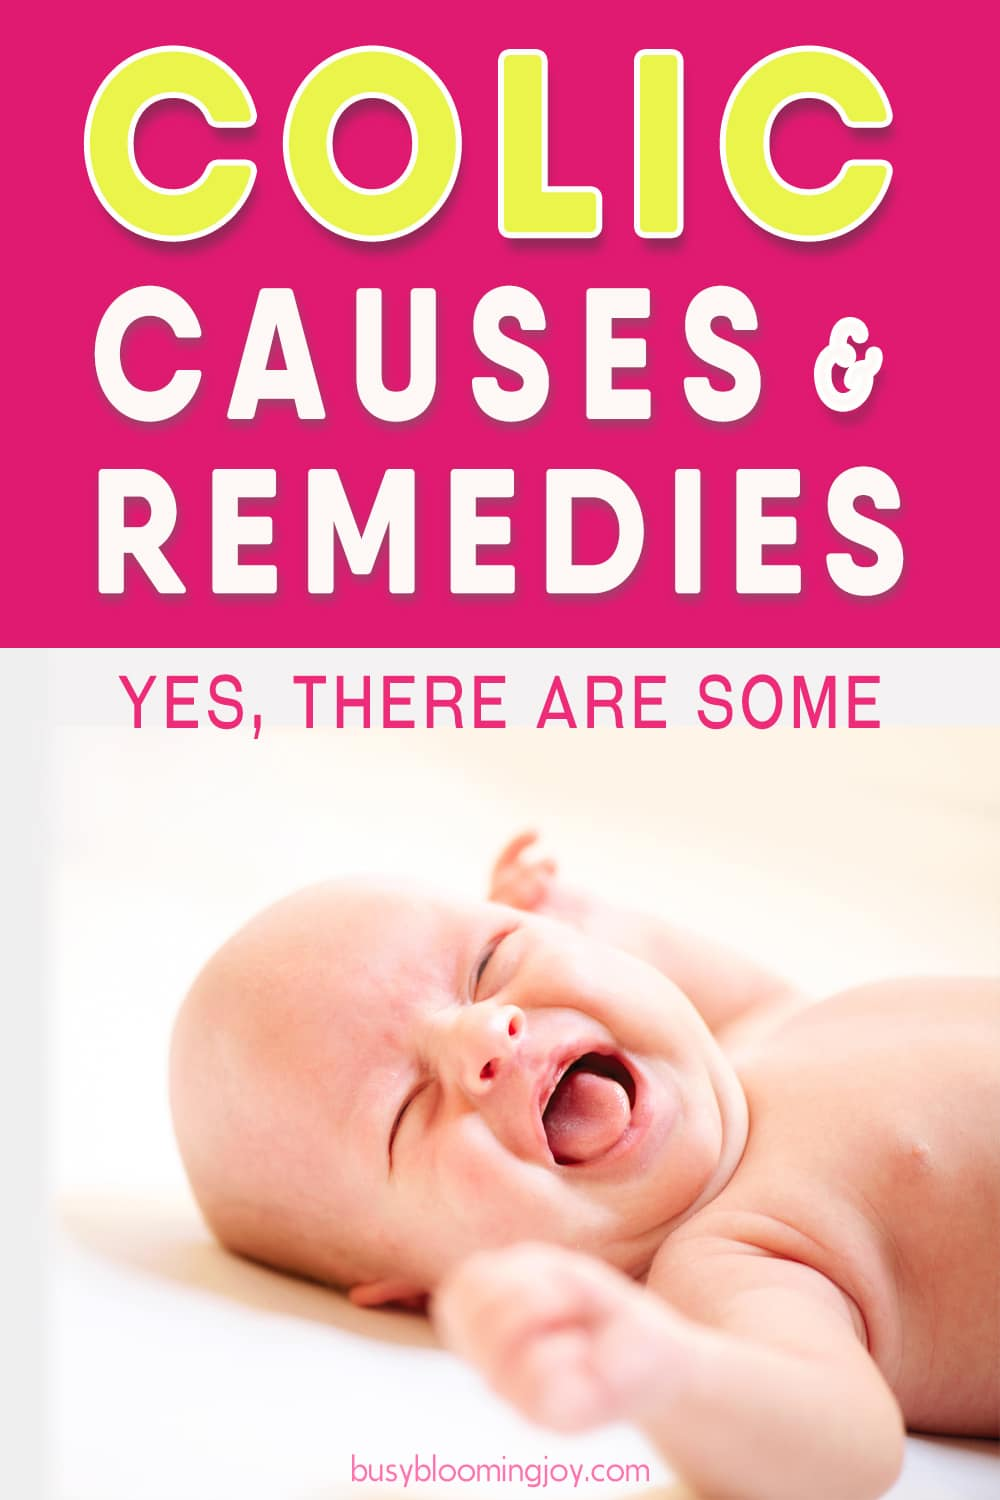 Colic: what is it & is crying really inconsolable? Plus causes & remedies (yes, there ARE some)